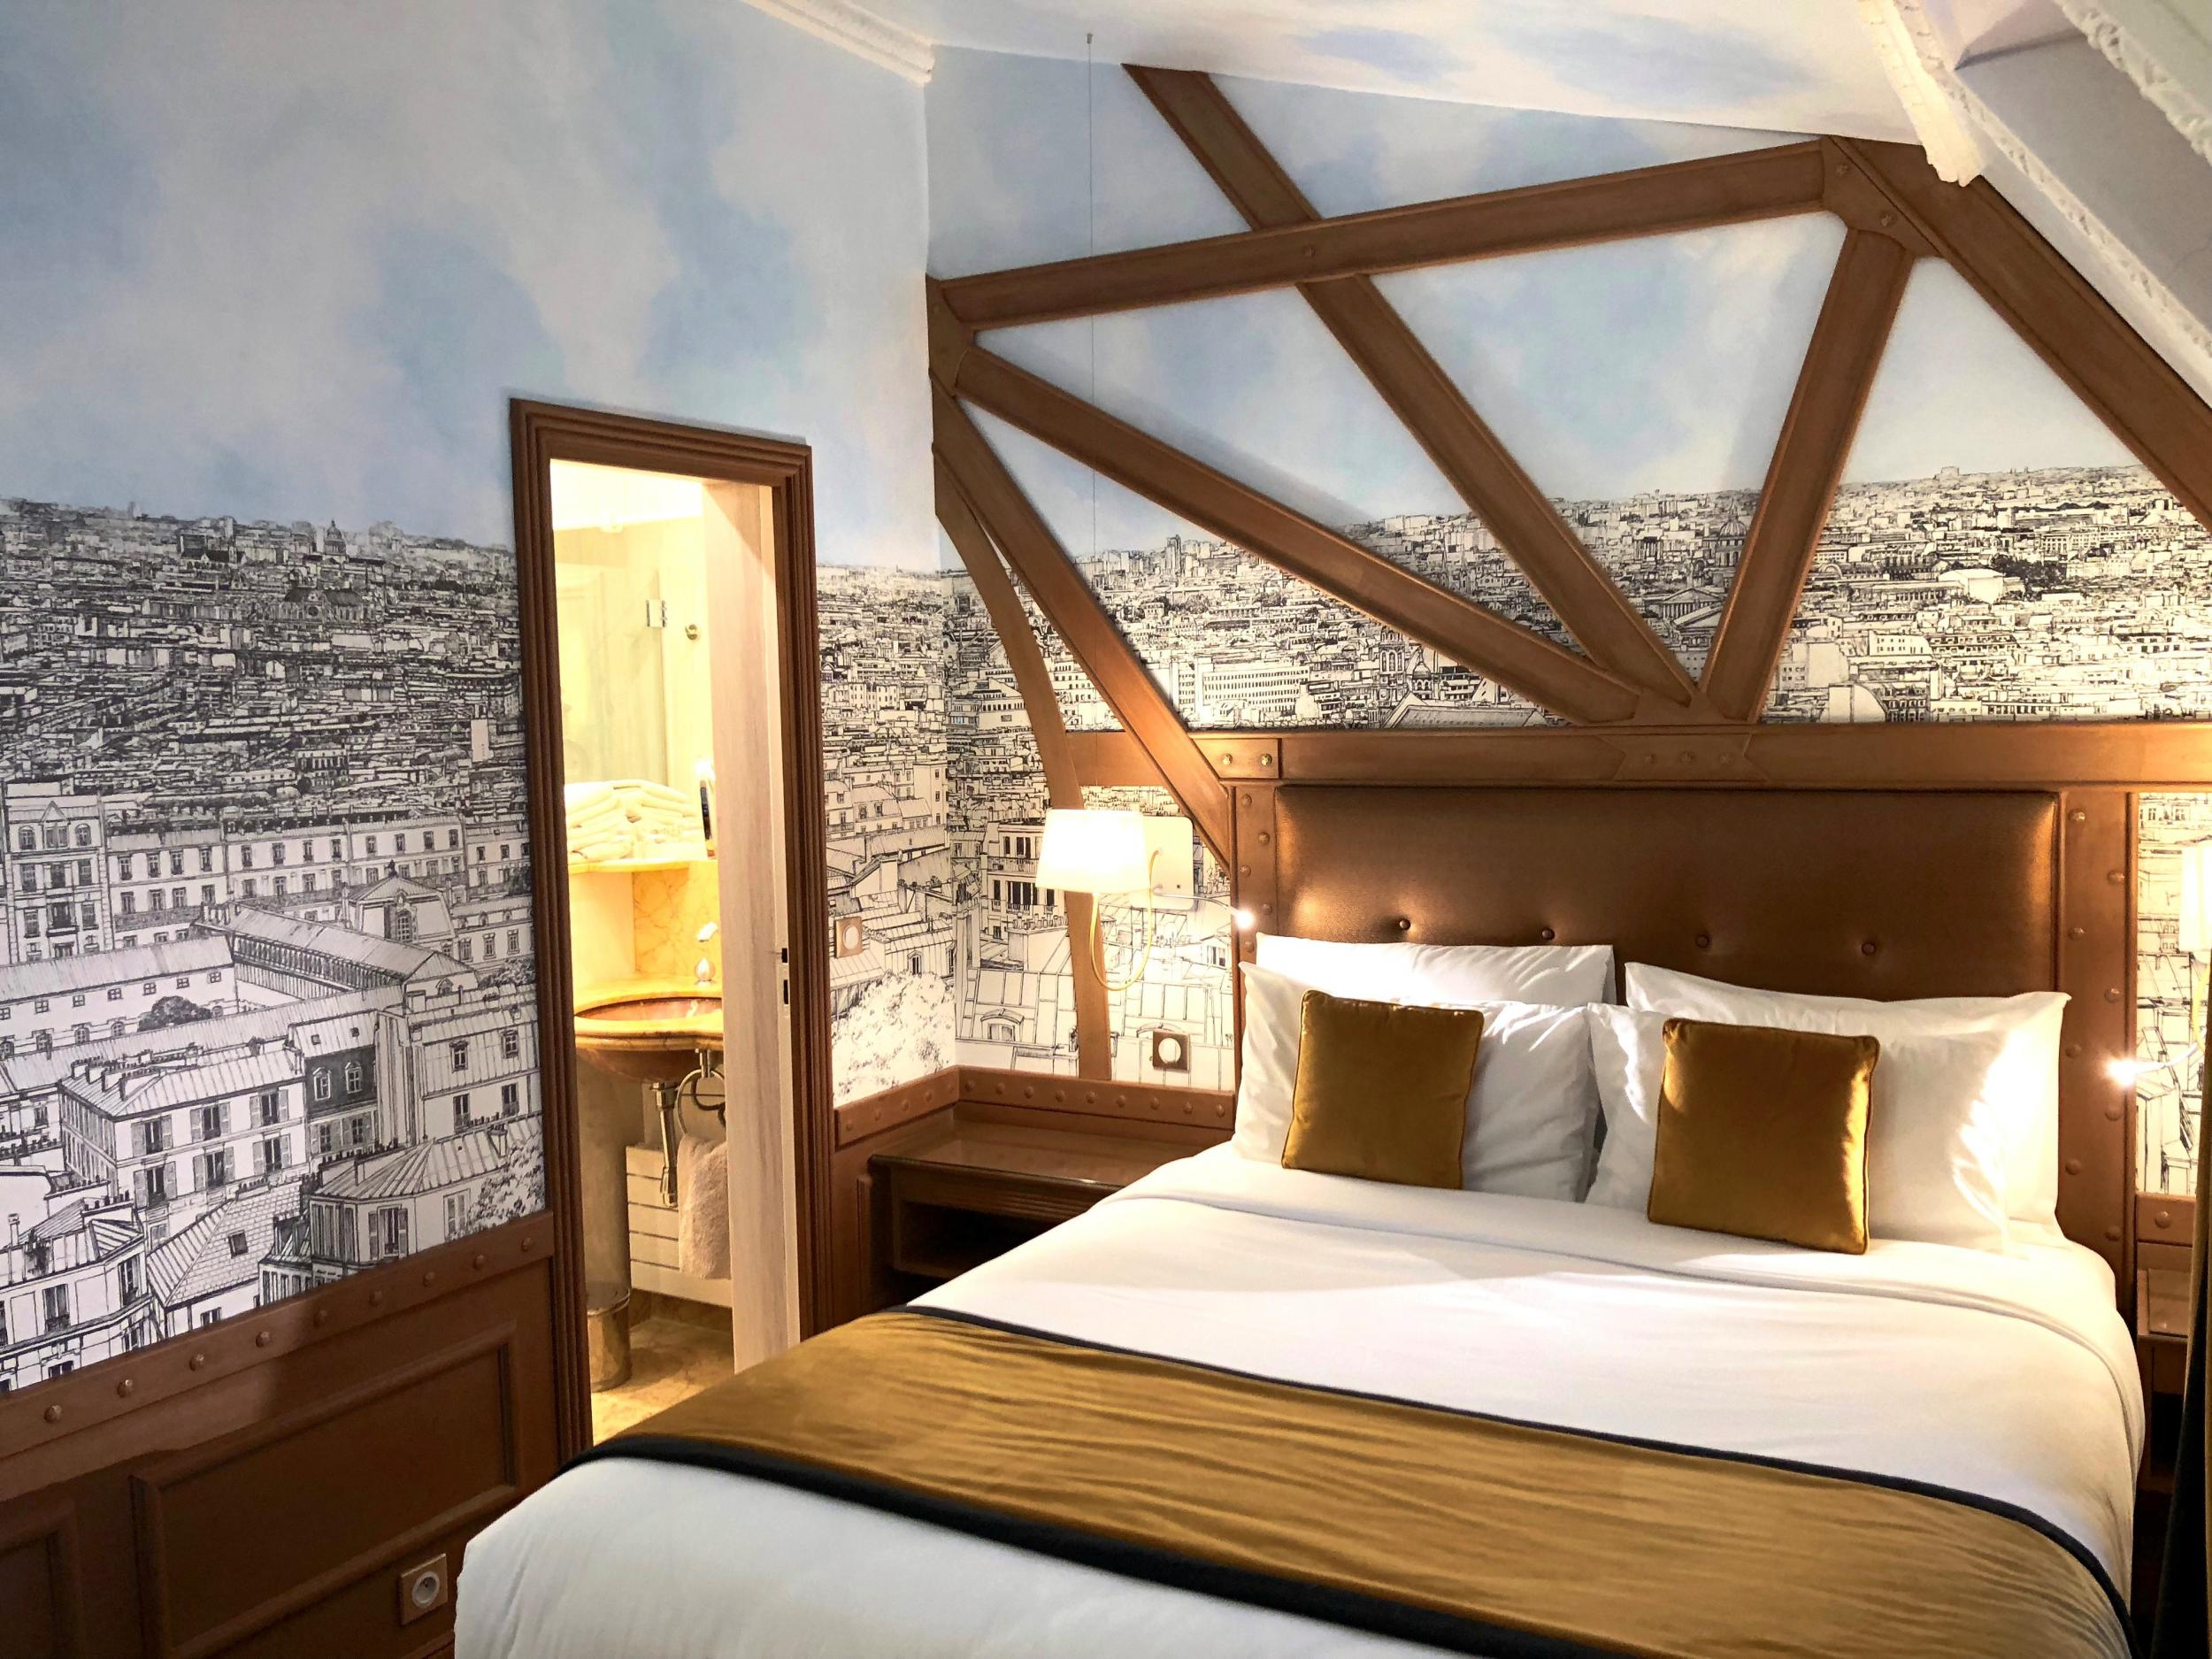 Paris Hotels The Best Places For Style And Location The Independent